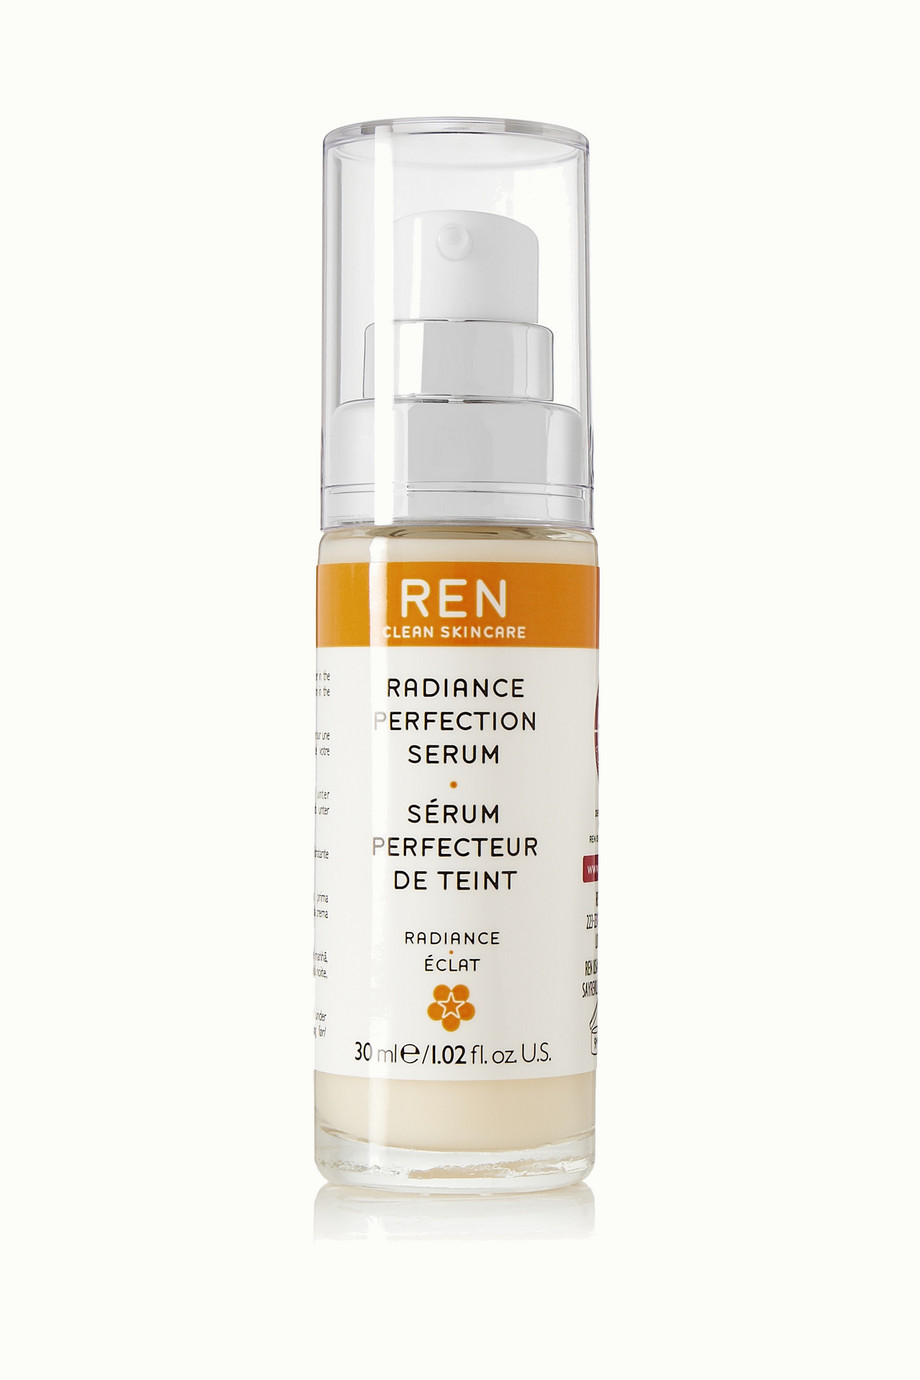 Radiance Perfection Serum, 30ml, by Ren Skincare